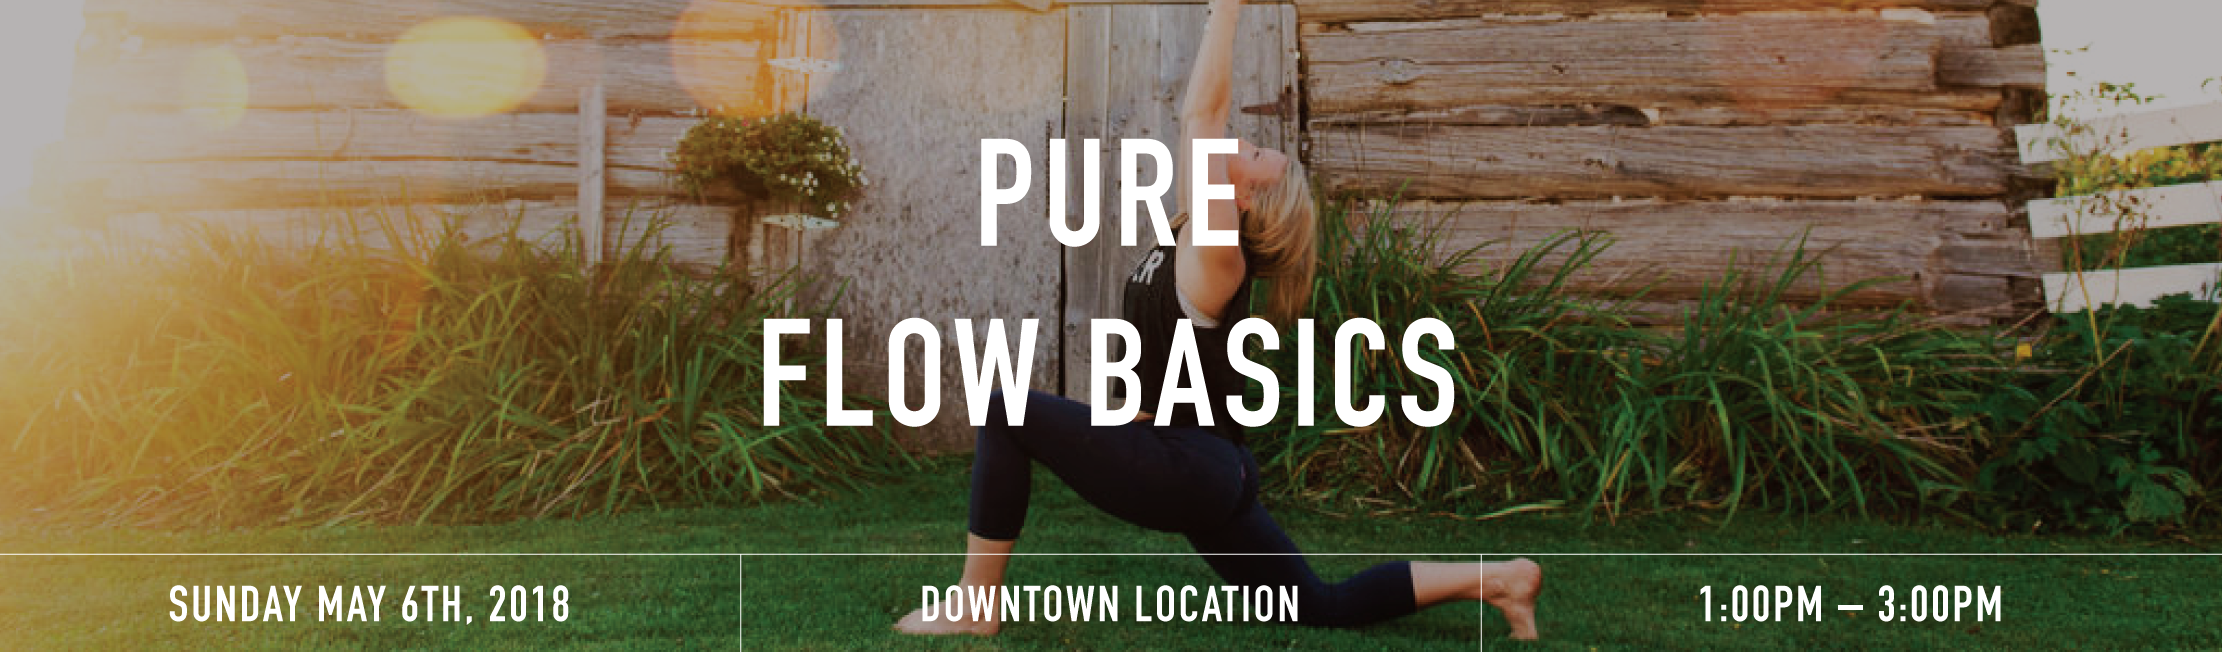 Pure flow basics banner  3